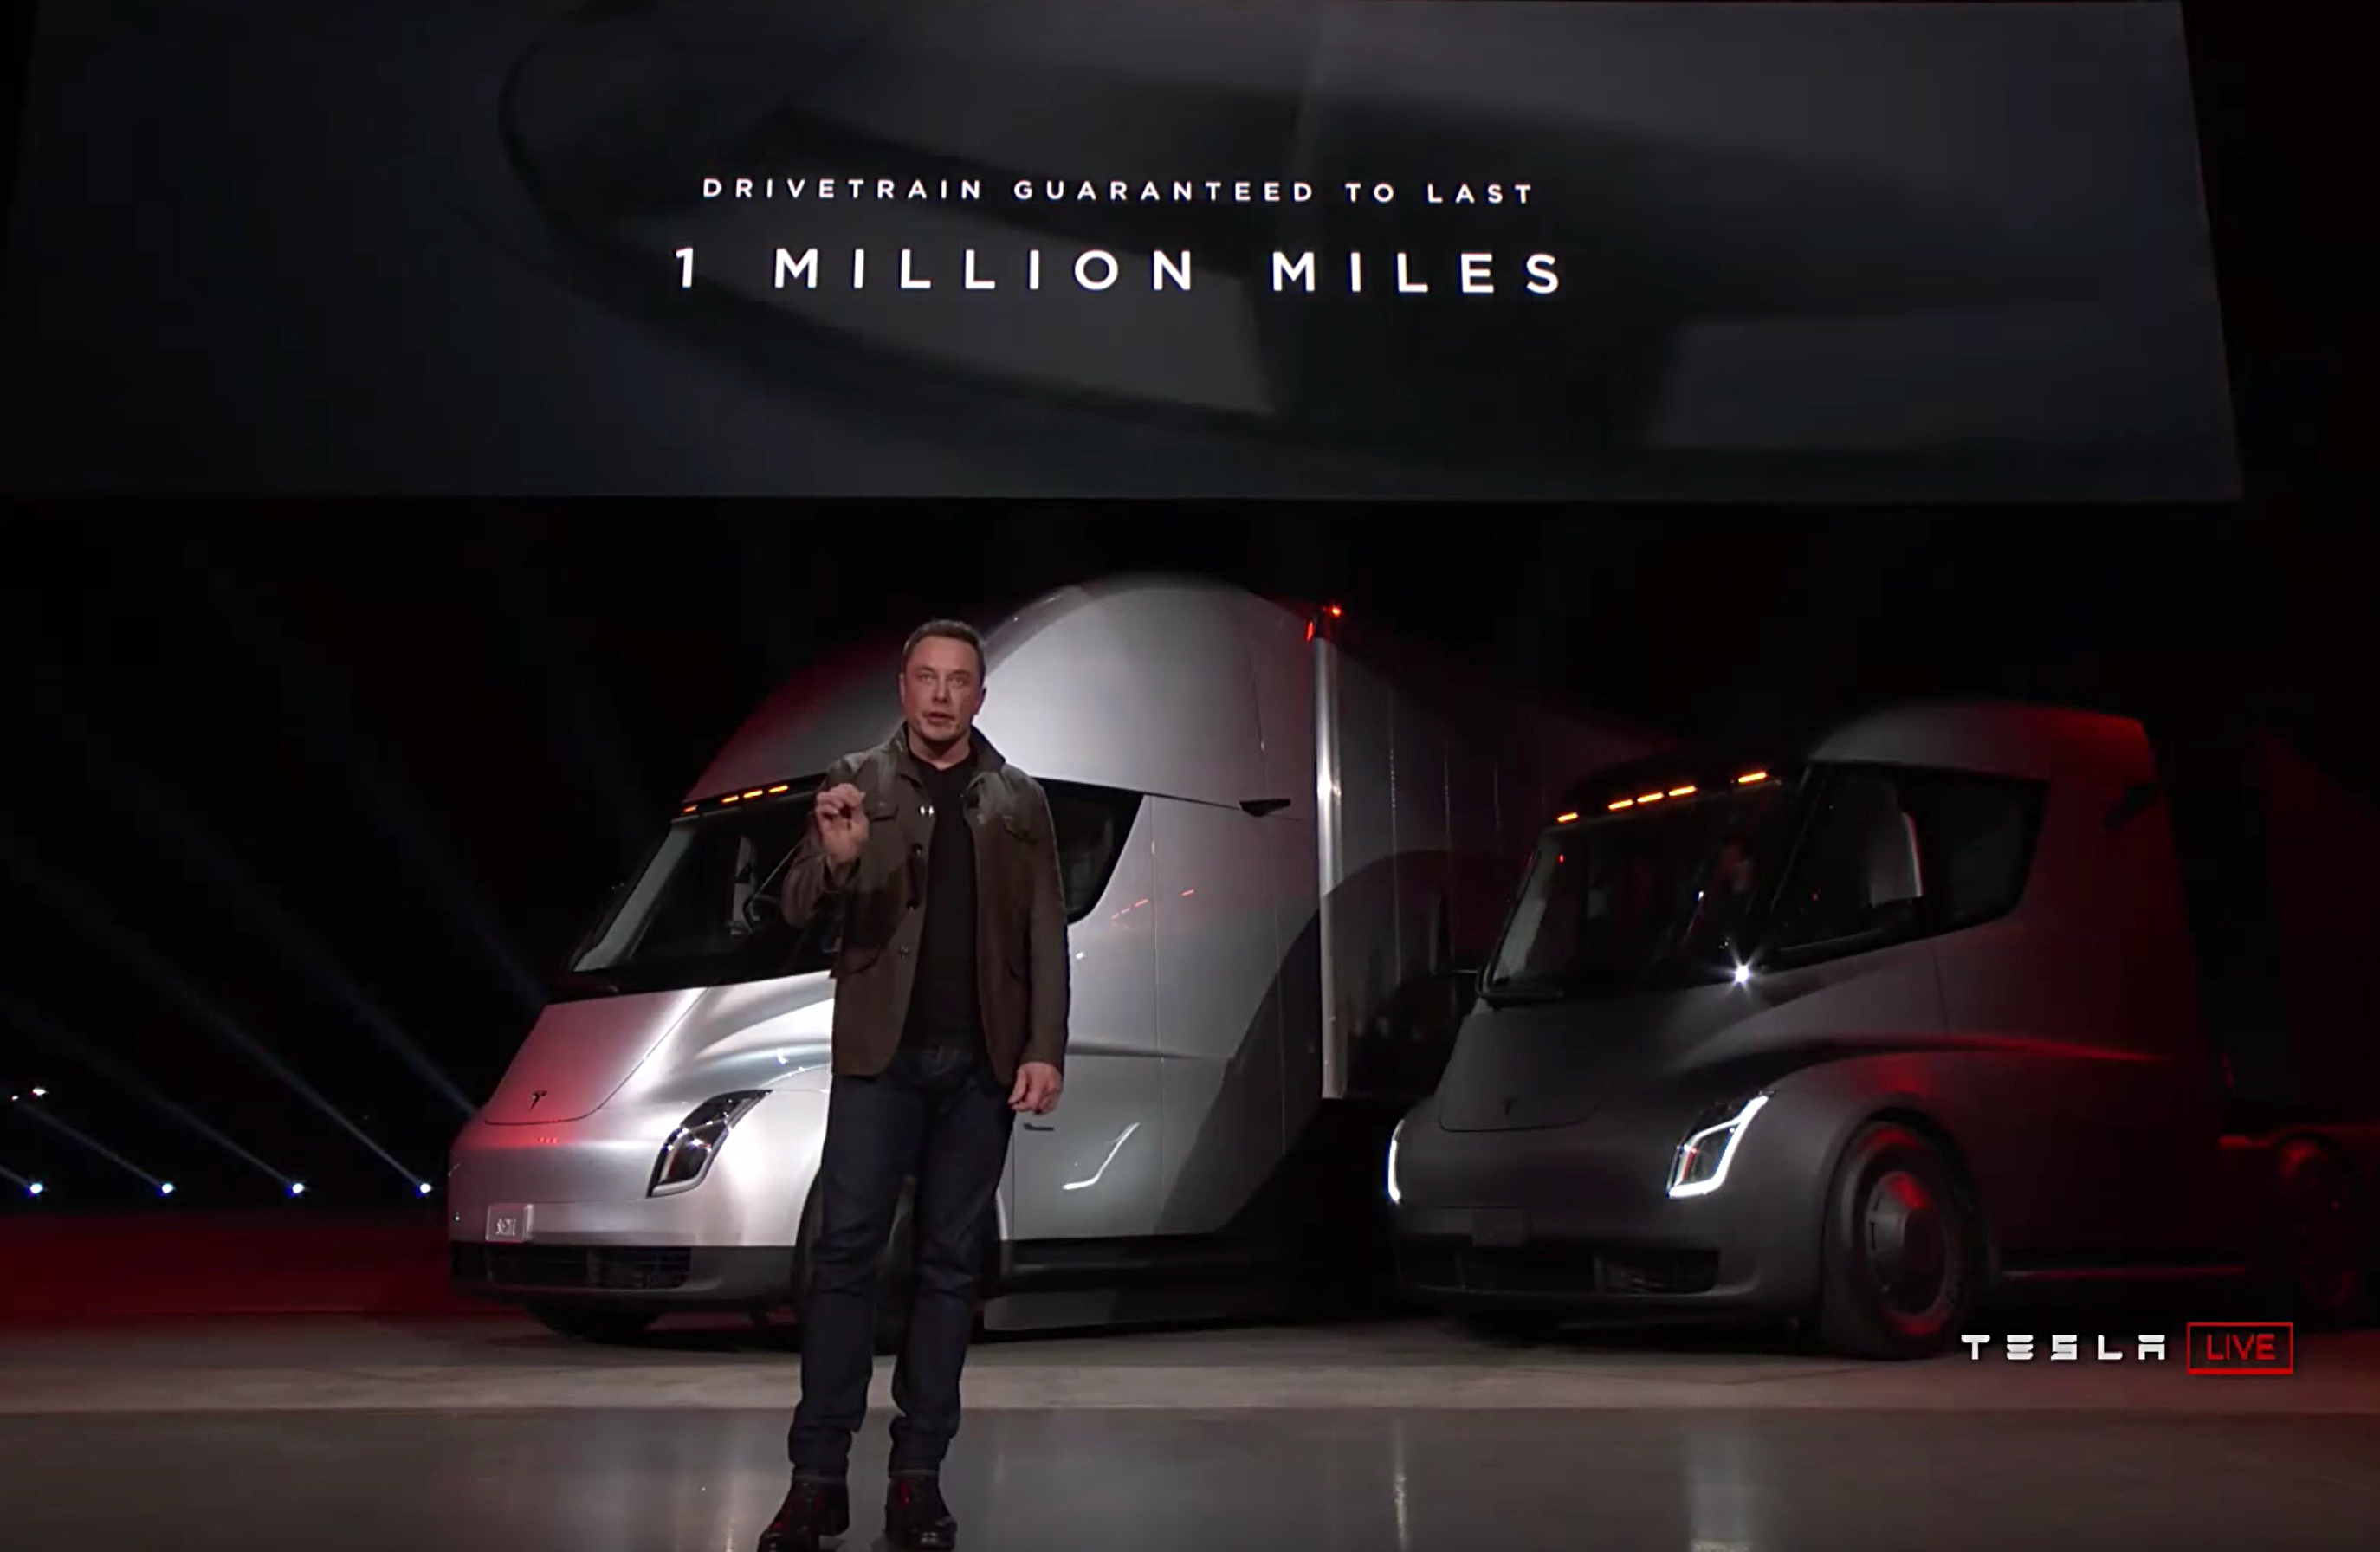 tesla-semi-drivetrain-1-million-miles